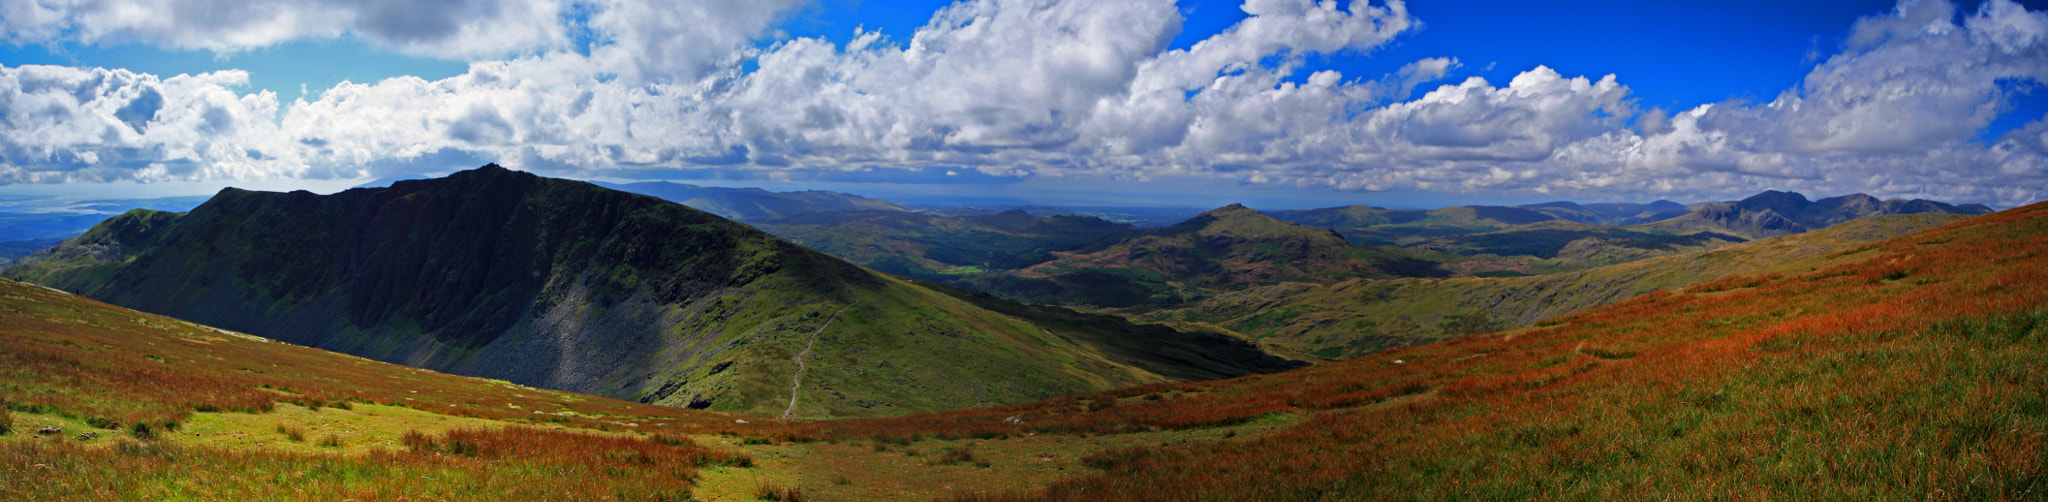 Photograph DOW CRAG PANORAMIC by Gary Turnbull on 500px